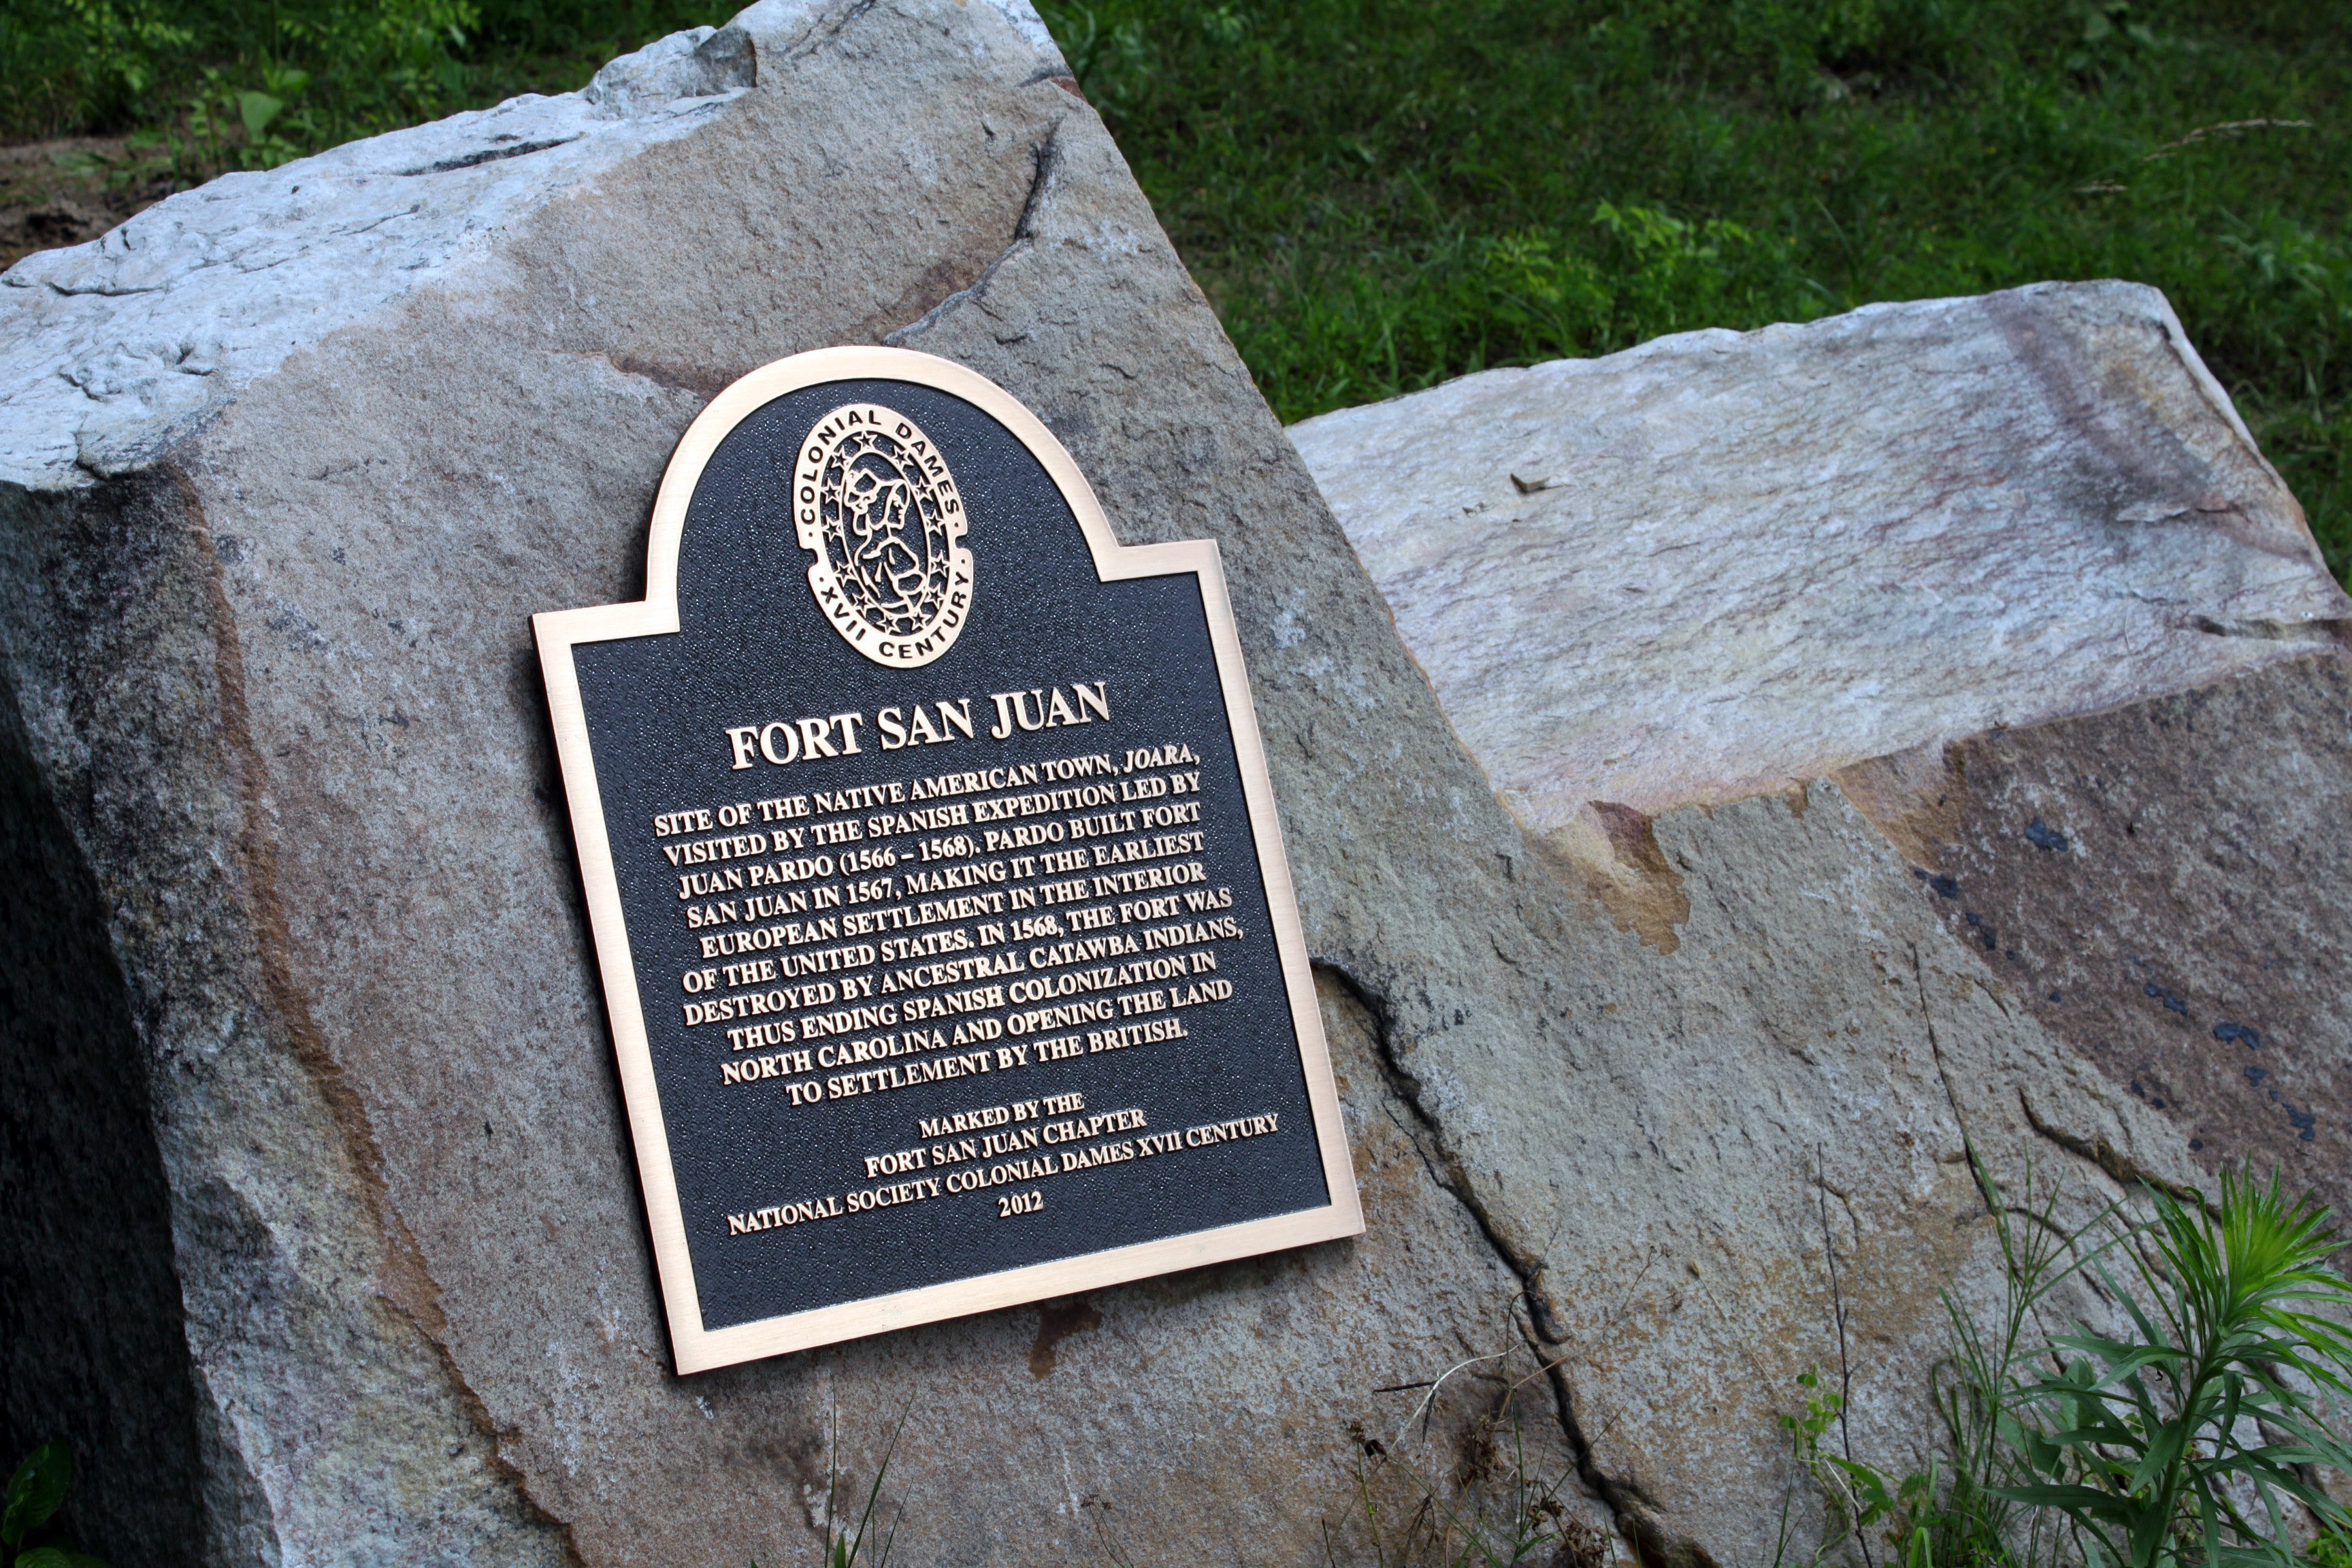 Fort San Juan lasted less than 18 months. (photo by Beth Lawrence)